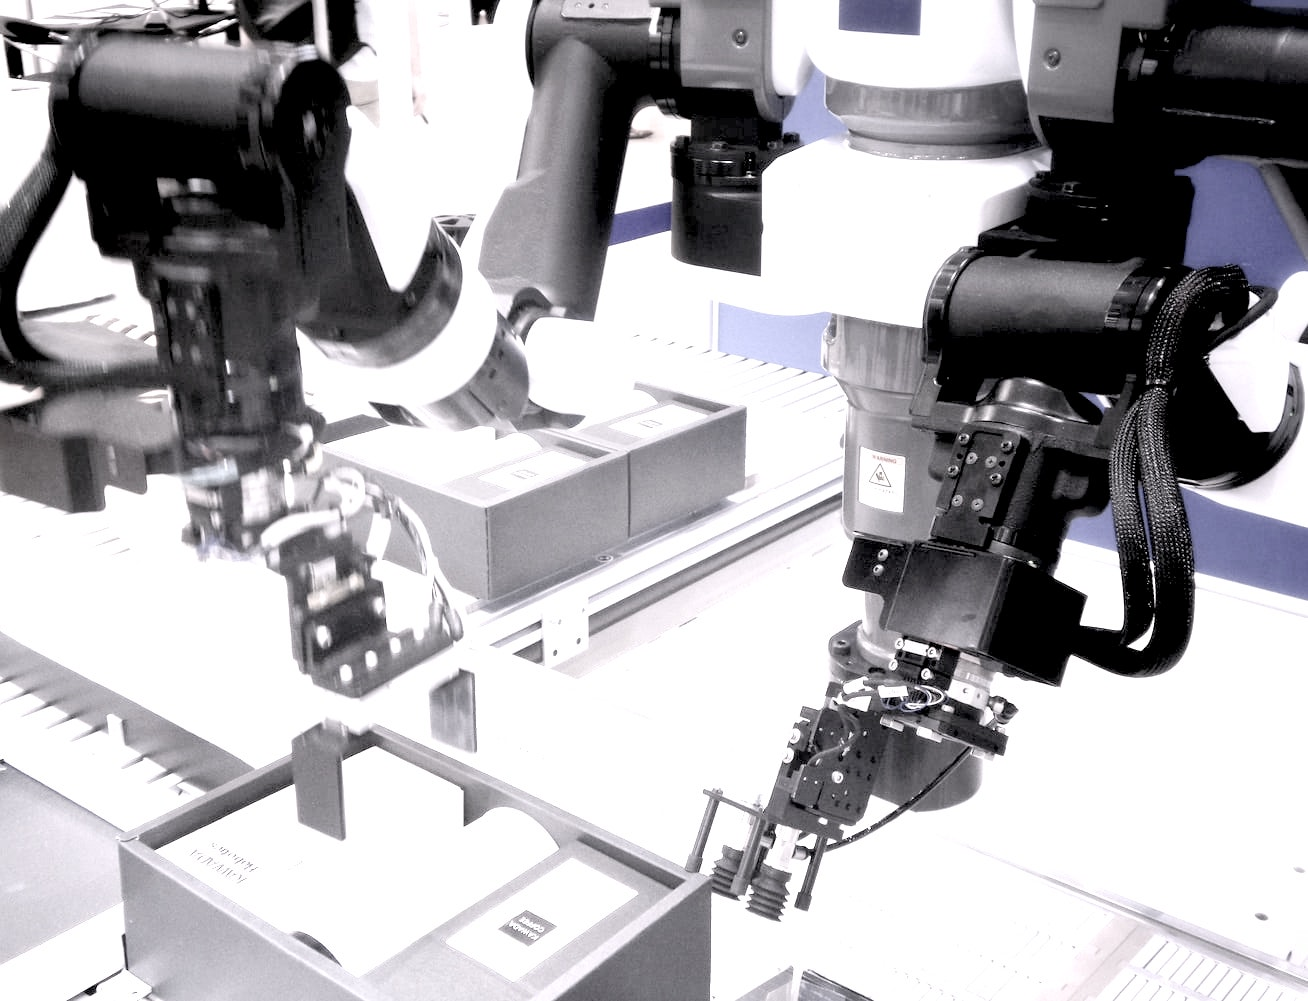 <p><strong>Industry 4.0</strong></p>